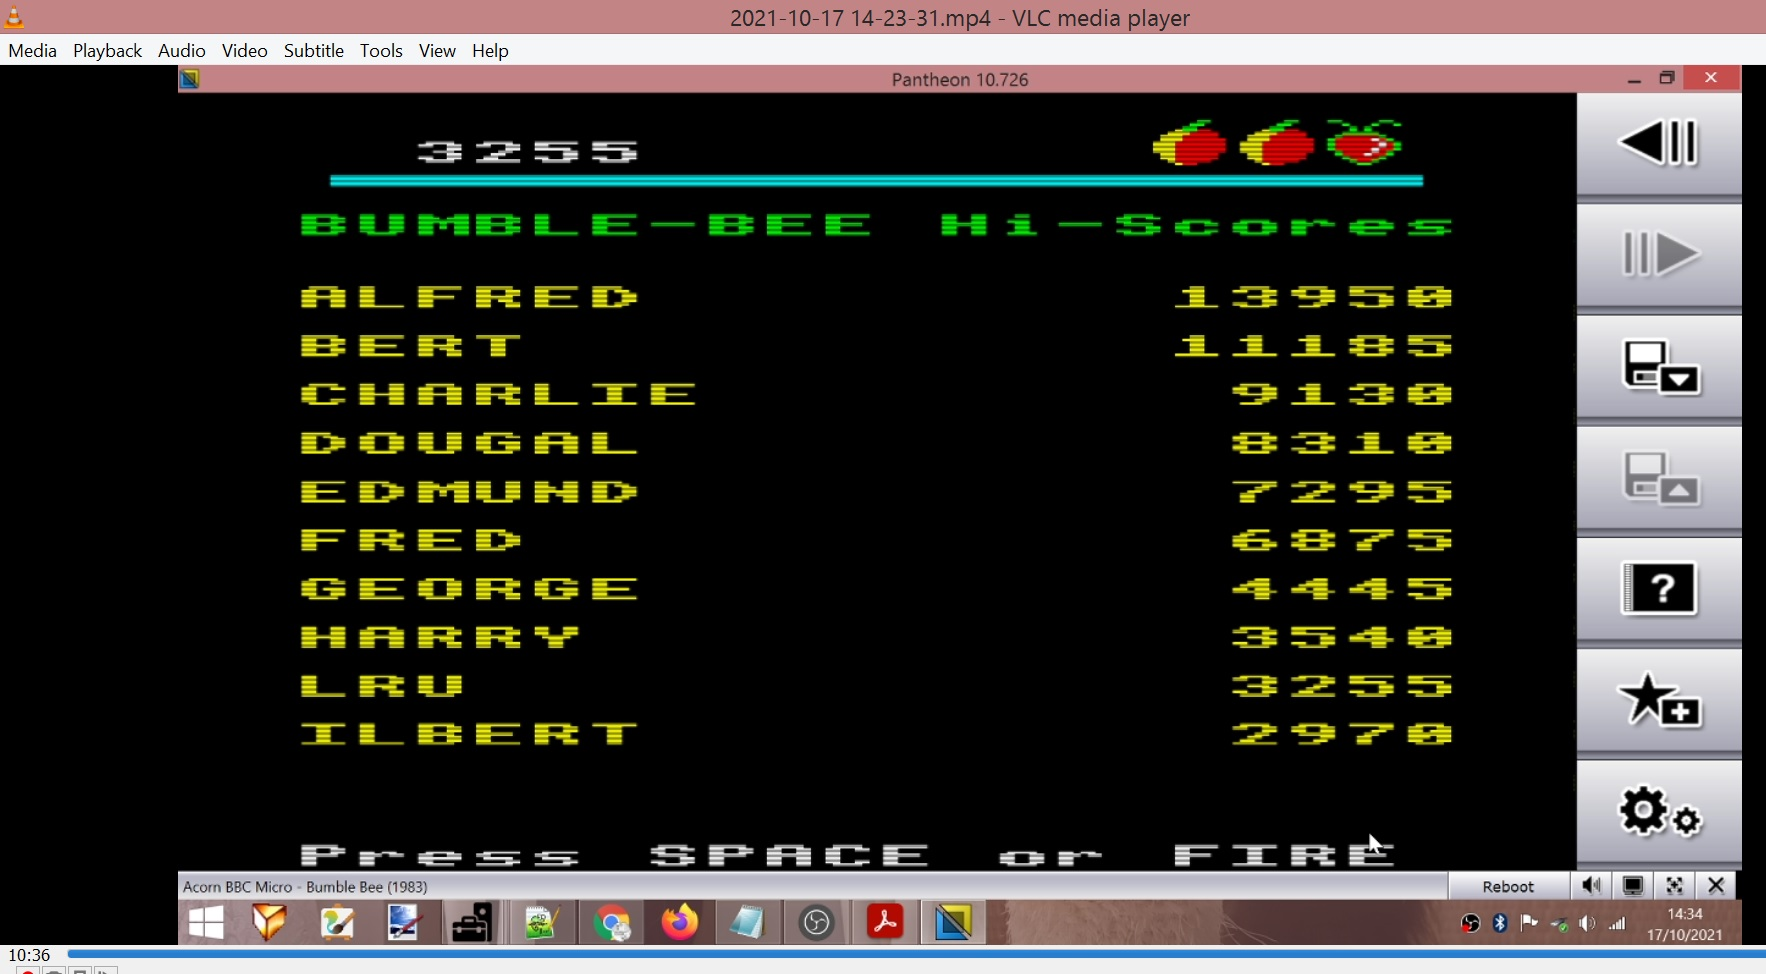 LuigiRuffolo: Bumble Bee (BBC Micro Emulated) 3,255 points on 2021-10-17 07:16:41